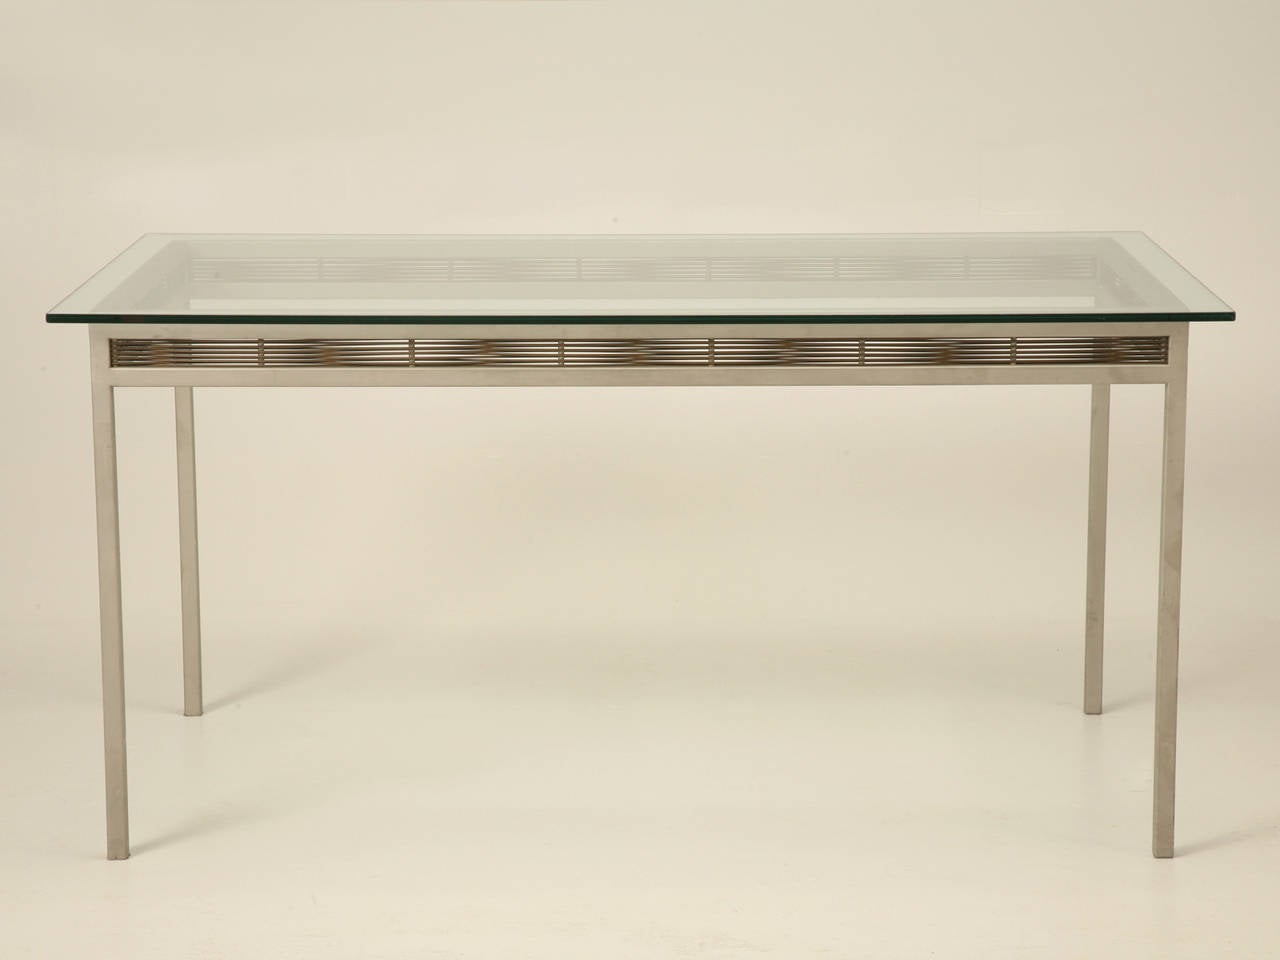 Originally designed for the outside, but commonly used inside as well, this stainless steel table will last a lifetime. Designed and fabricated by the Heltzer company in Chicago, Illinois and manufactured to a very high standard.